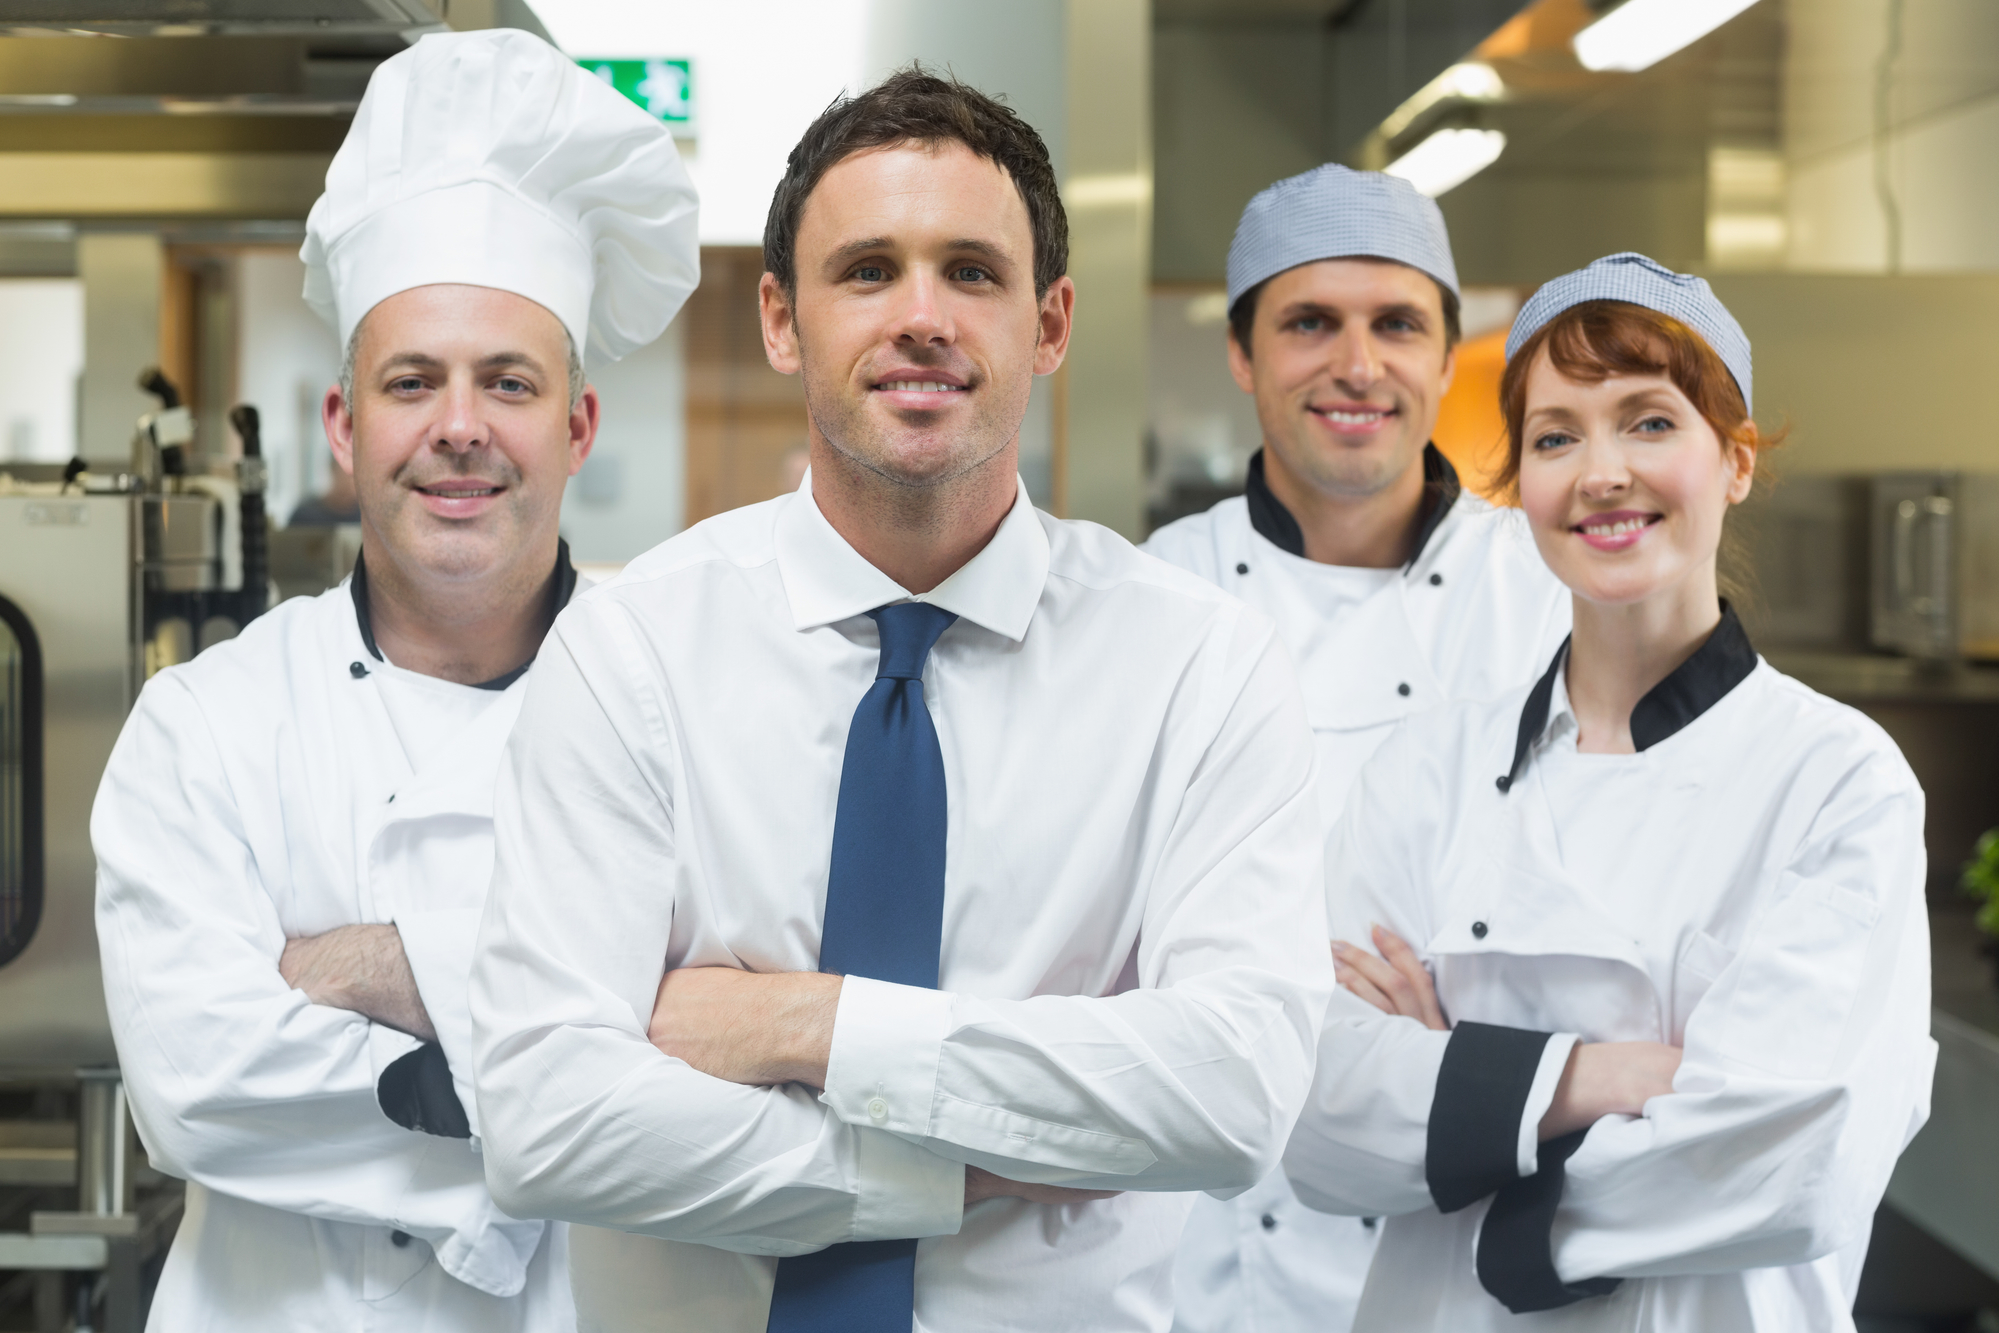 11 Traits Restaurant Owners Should Look for In a Restaurant Manager